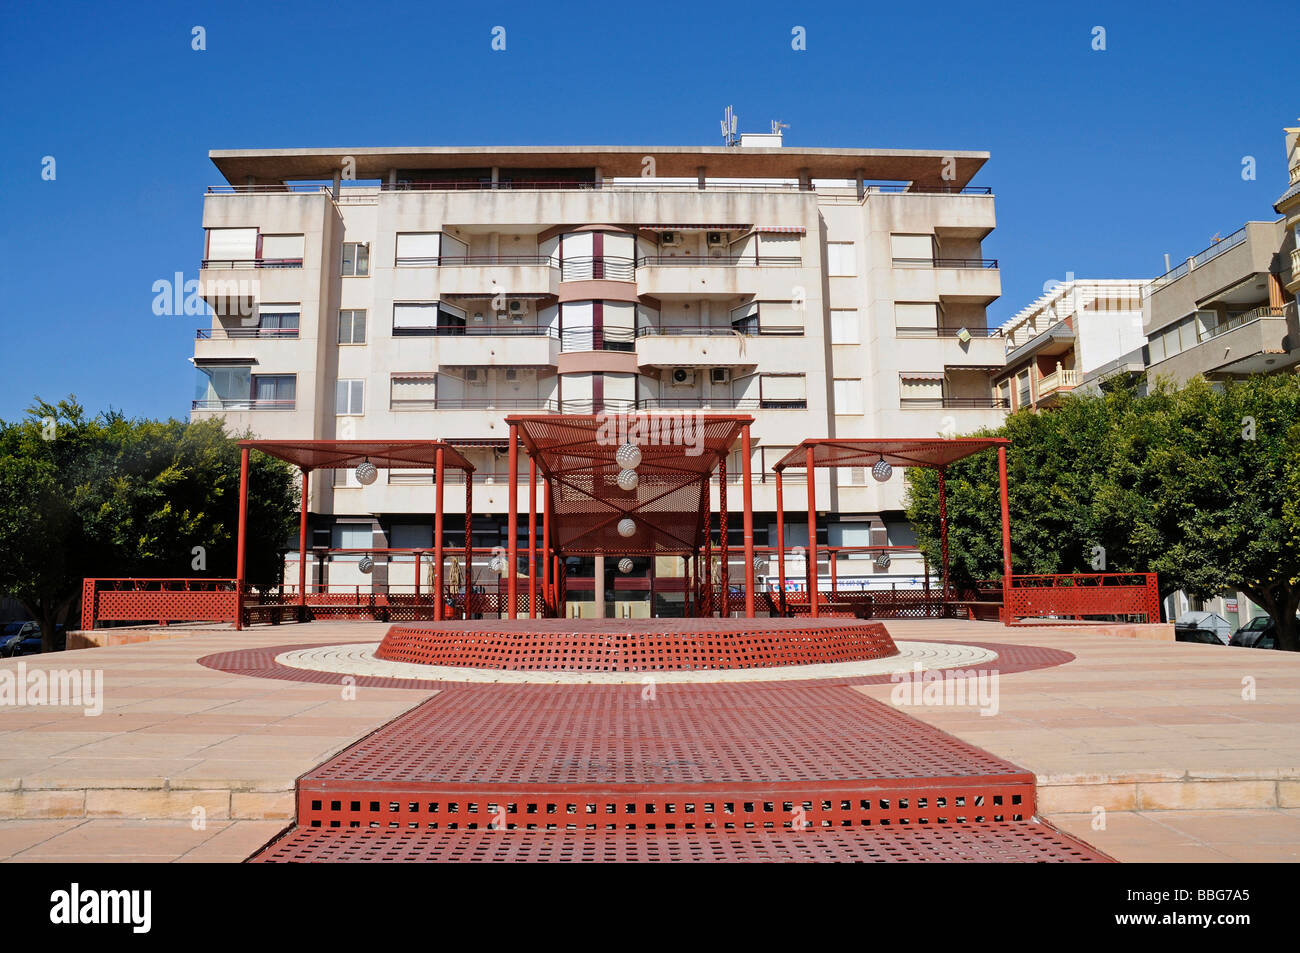 Aquarium, salt water, square, Santa Pola, Alicante, Costa Blanca, Spain, Europe - Stock Image